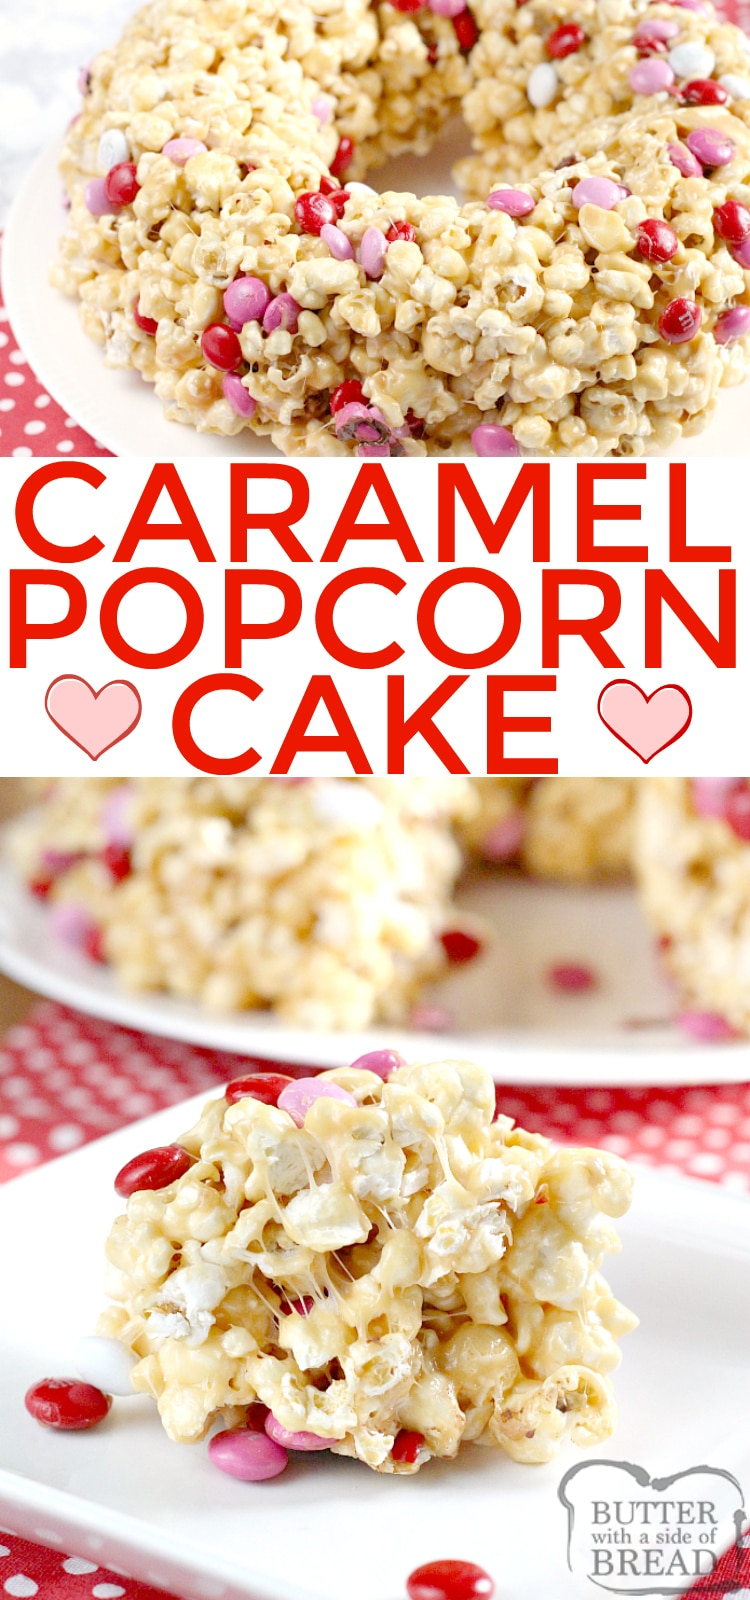 Caramel Popcorn Cake is made with caramel, marshmallows and a few other basic ingredients for a quick and easy no-bake dessert.